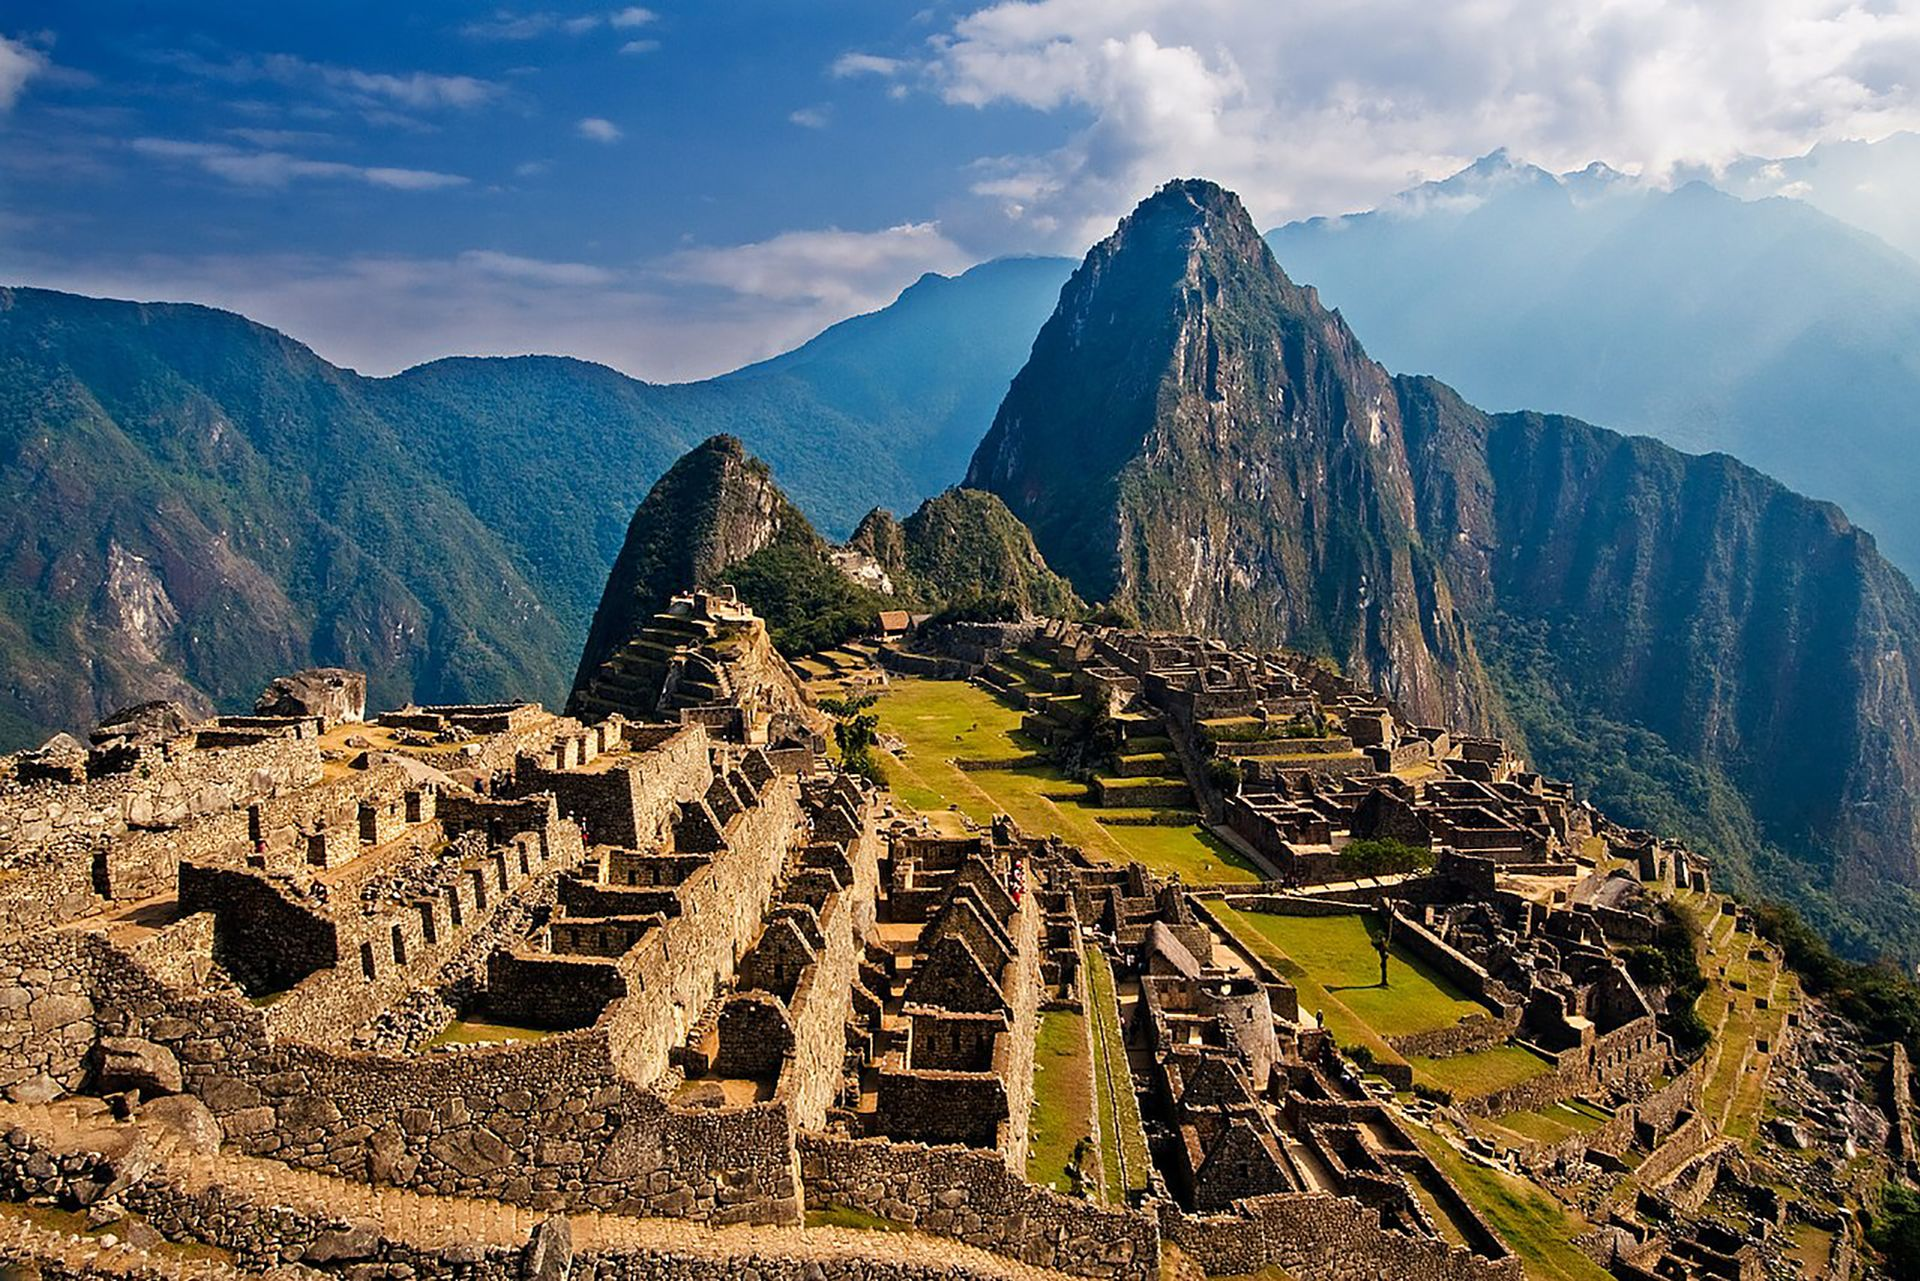 After scientific testing, historians face the task of rethinking the dating of the 15th-century Inca site Machu Picchu